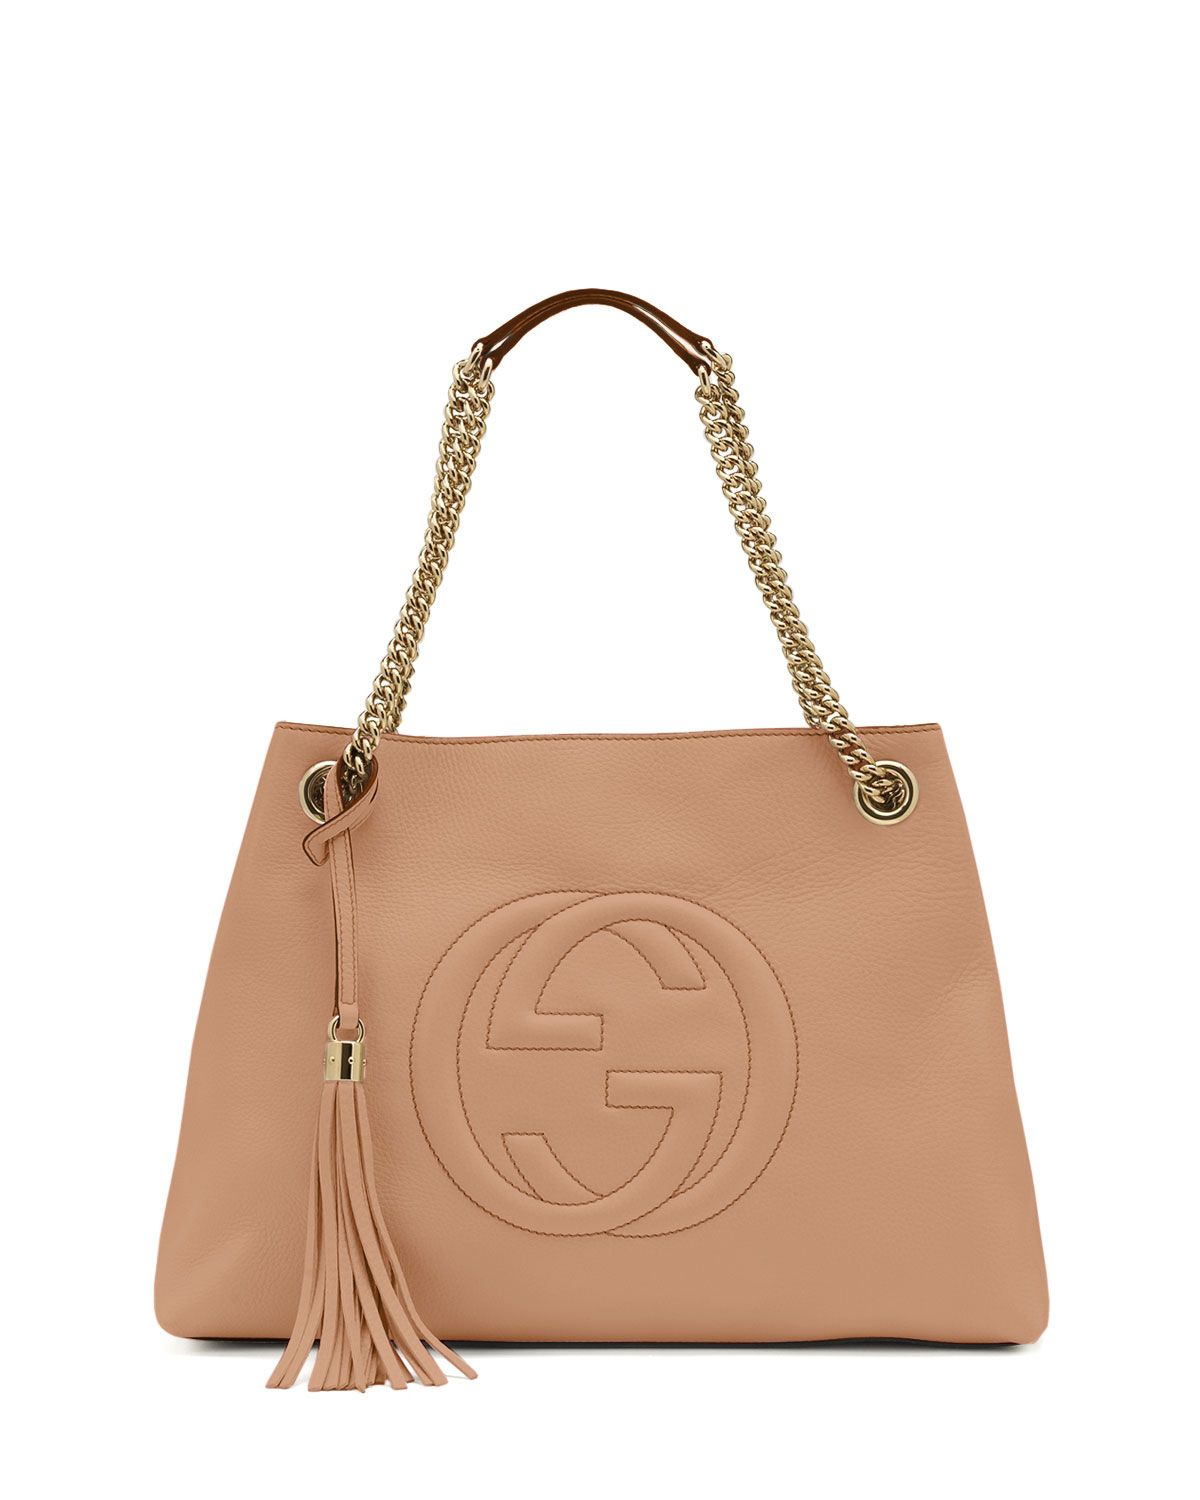 e7e4a80d2084 The Price of Gucci Handbags in South Africa